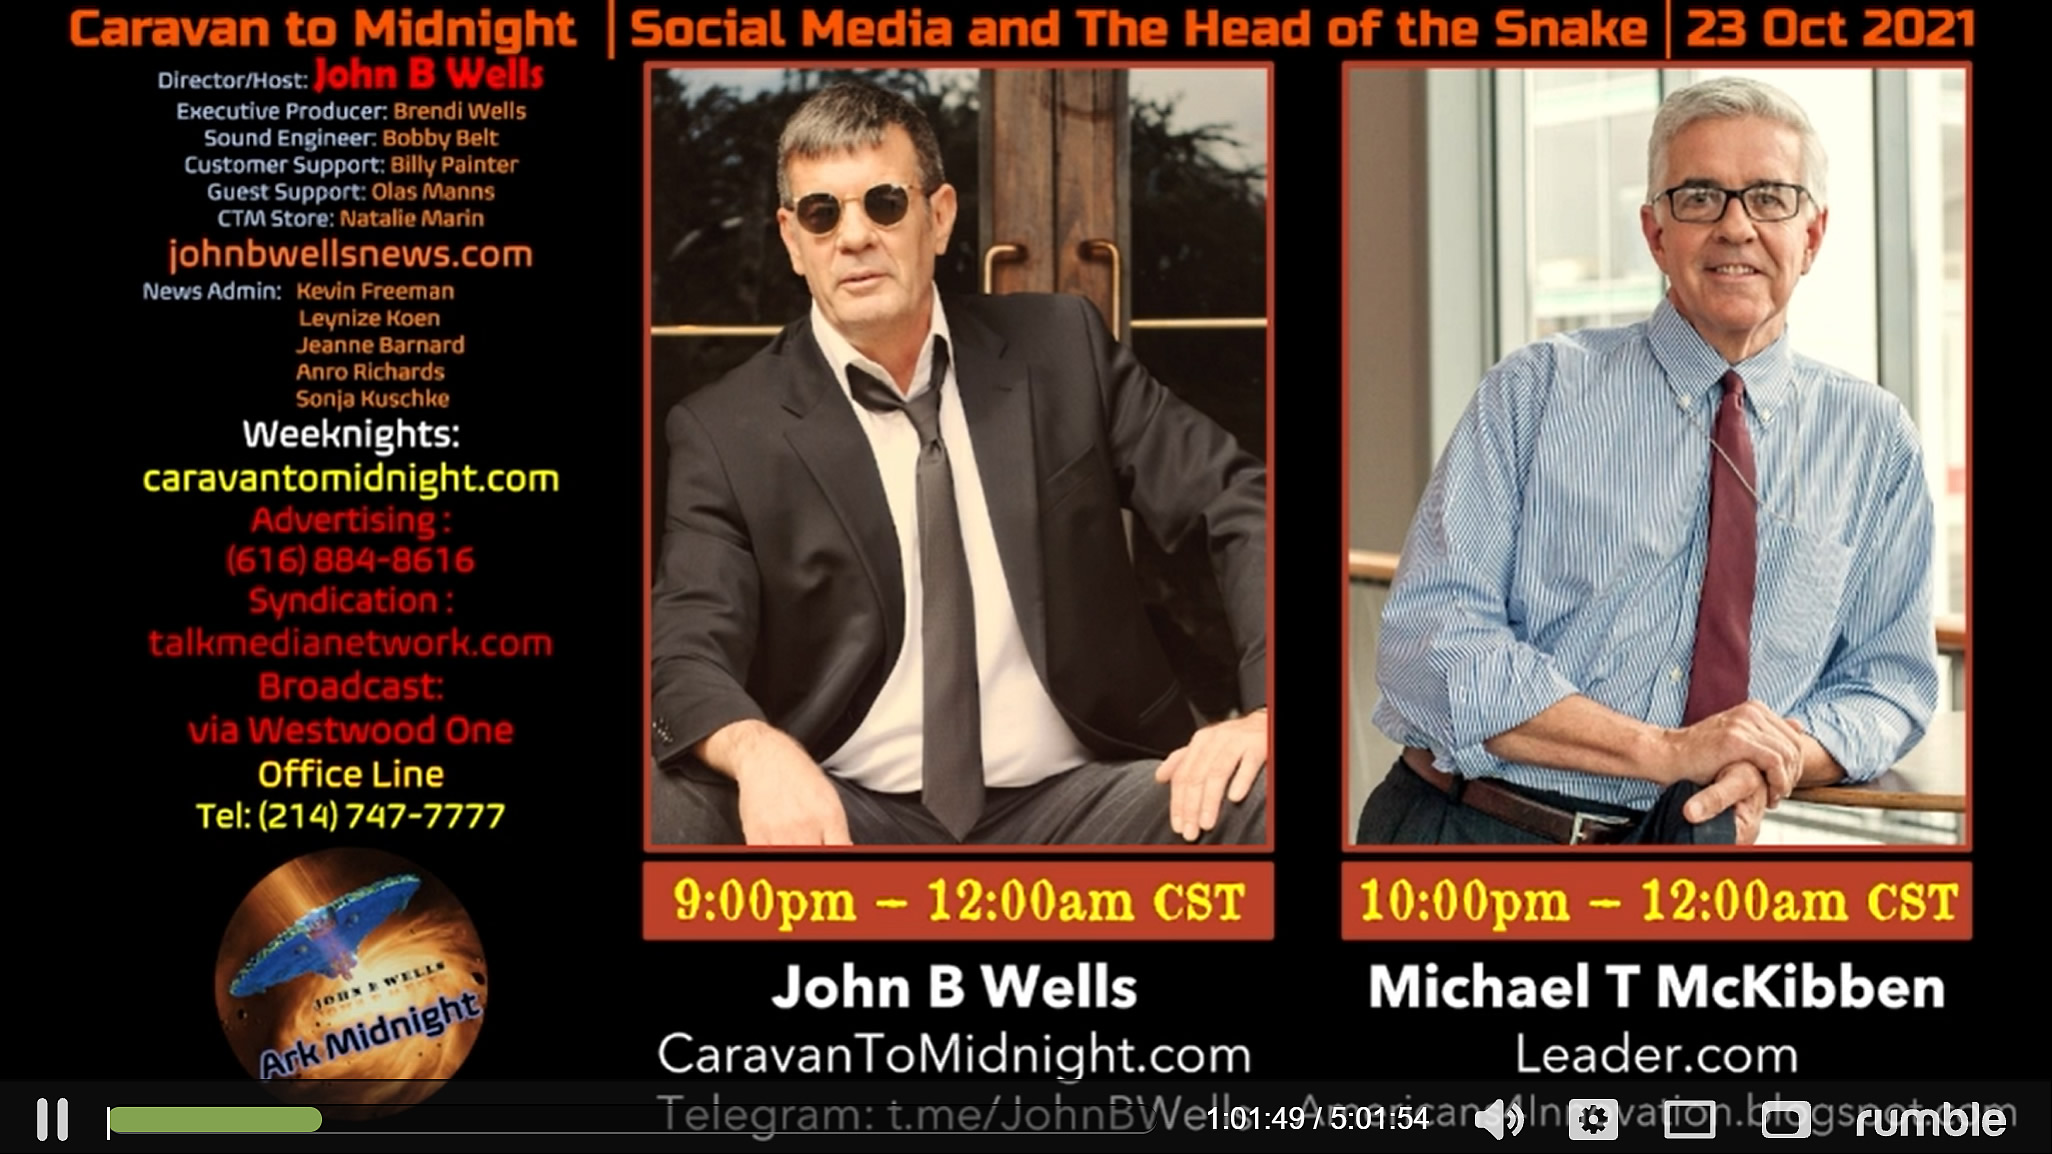 John B. Wells Live. (Oct. 24, 2021). Social Media and The Head of the Snake, interview with Michael McKibben, Leader Technologies - John B Wells Live. Rumble.